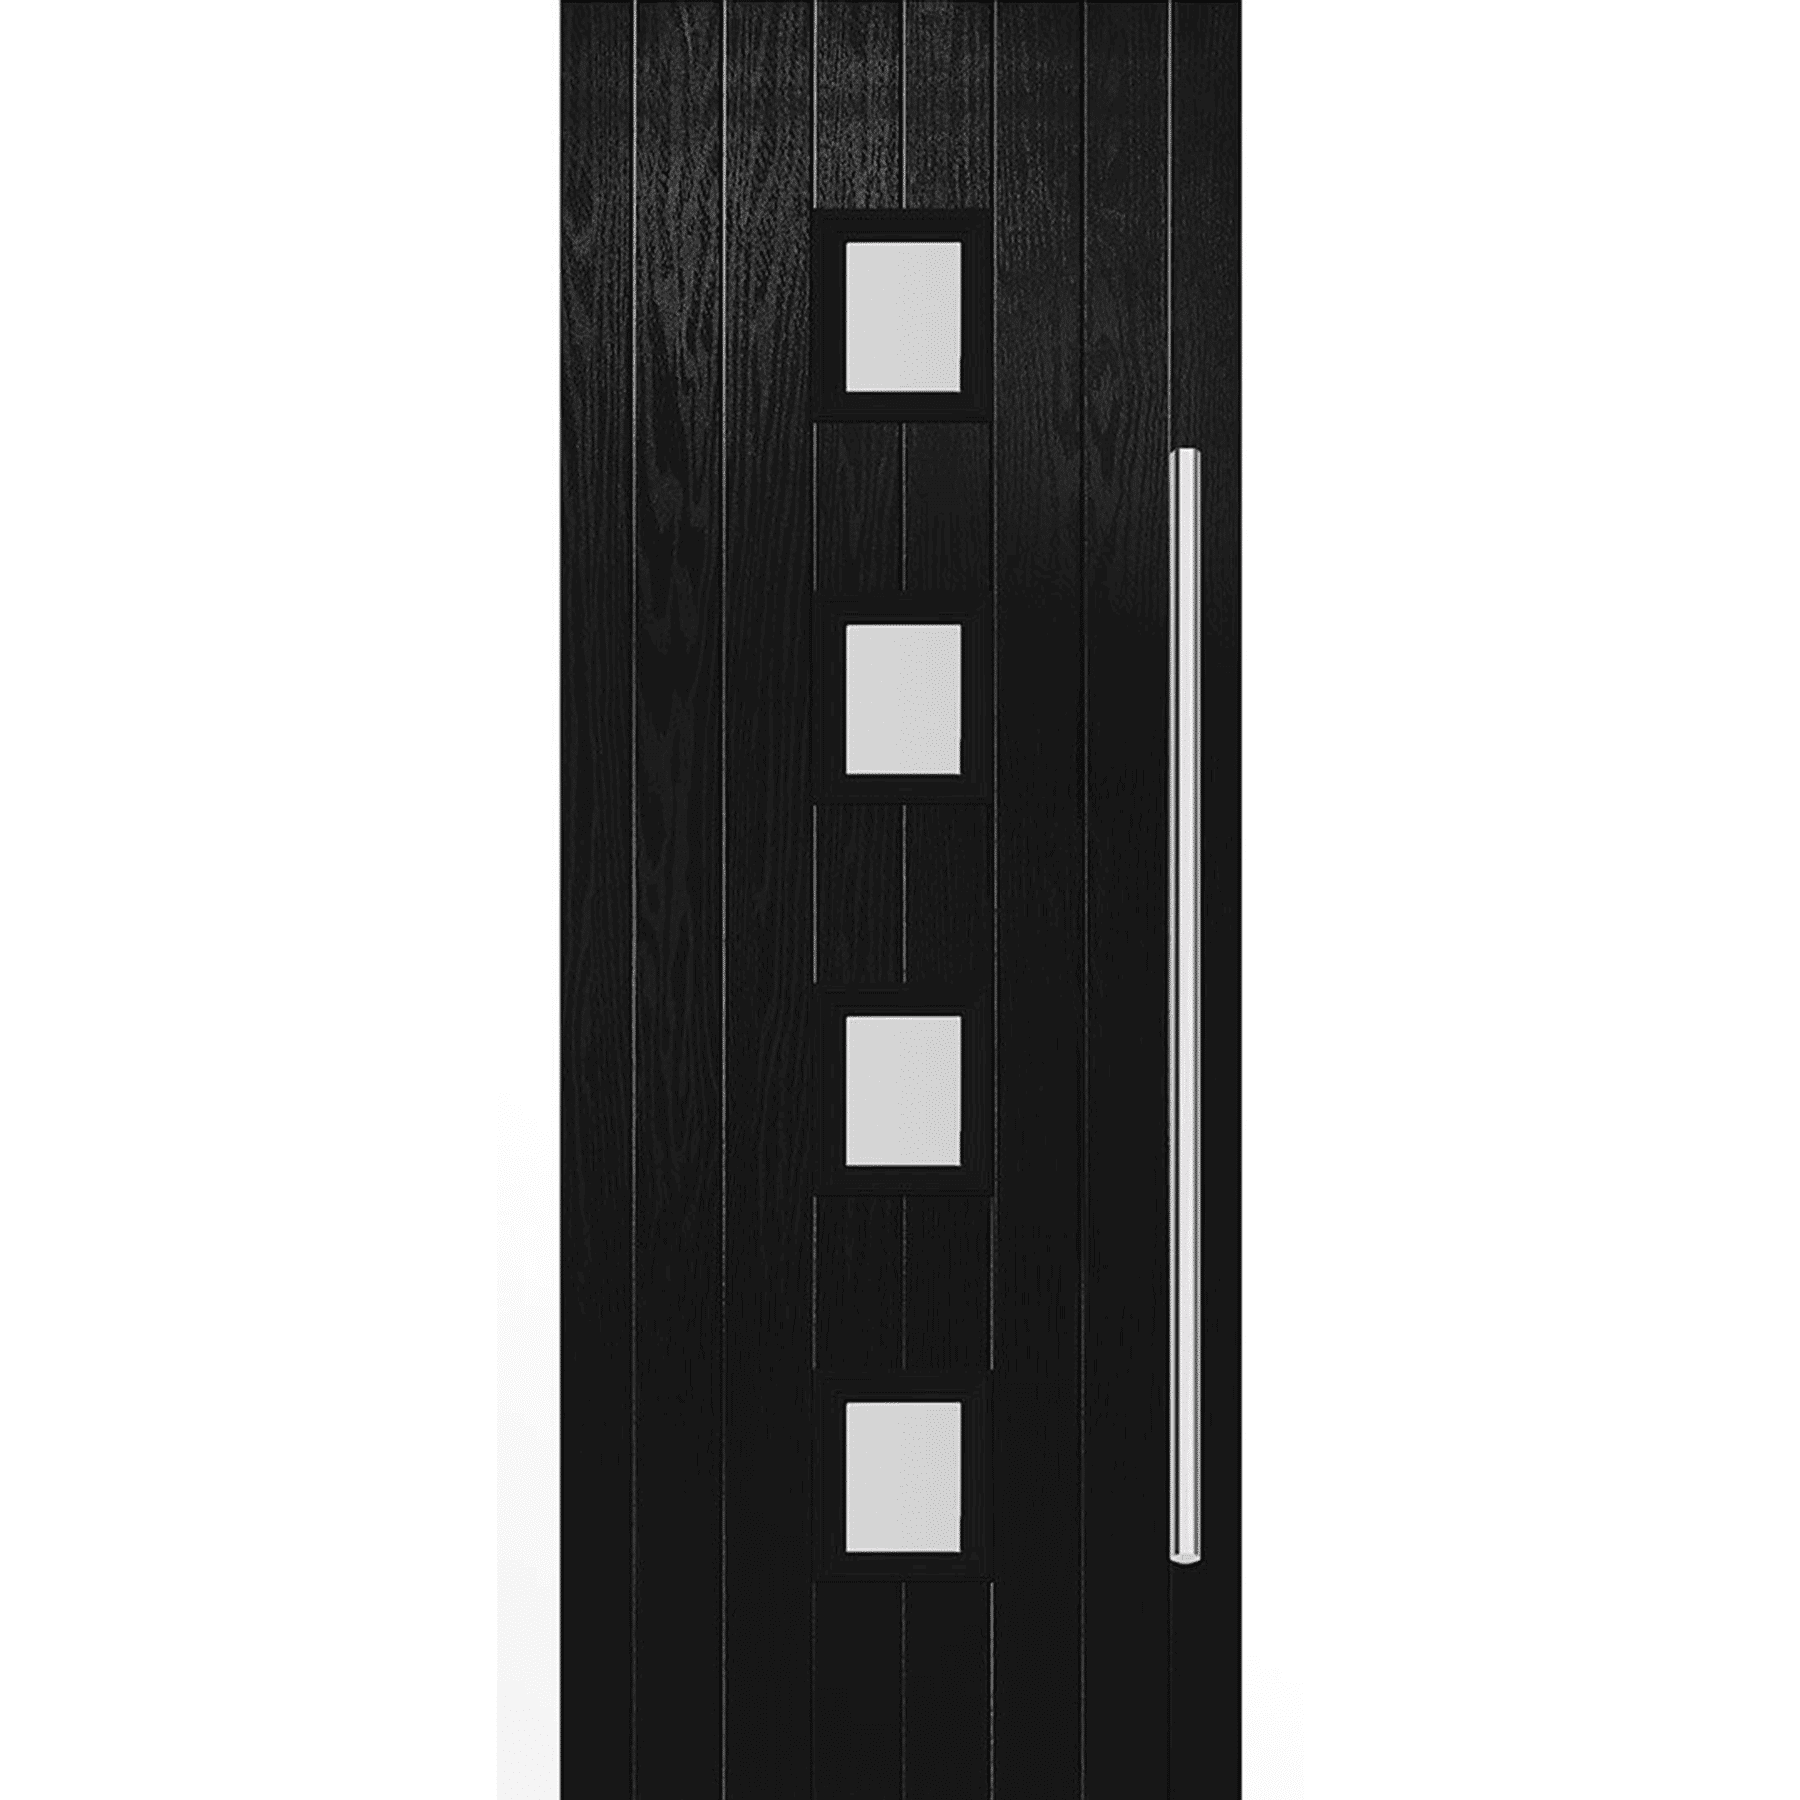 malton black glazed exterior door